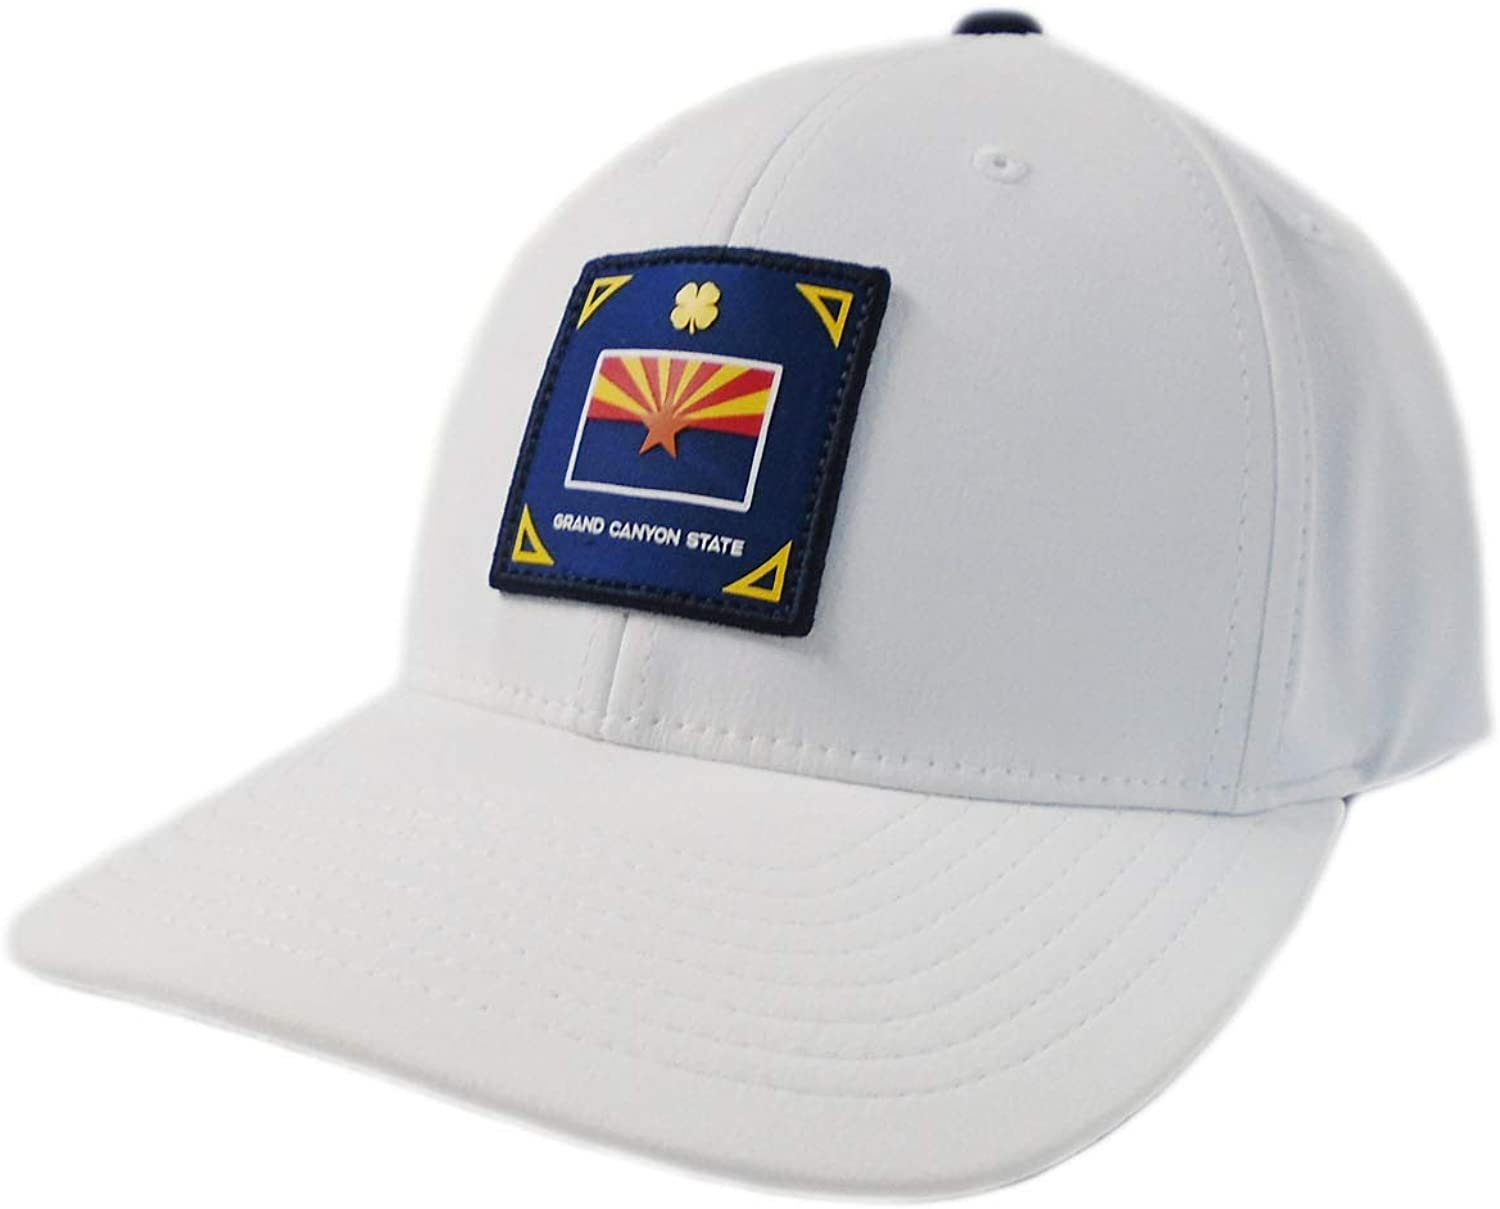 Black Clover New Live Lucky Arizona Represent White Fitted L/XL Hat/Cap